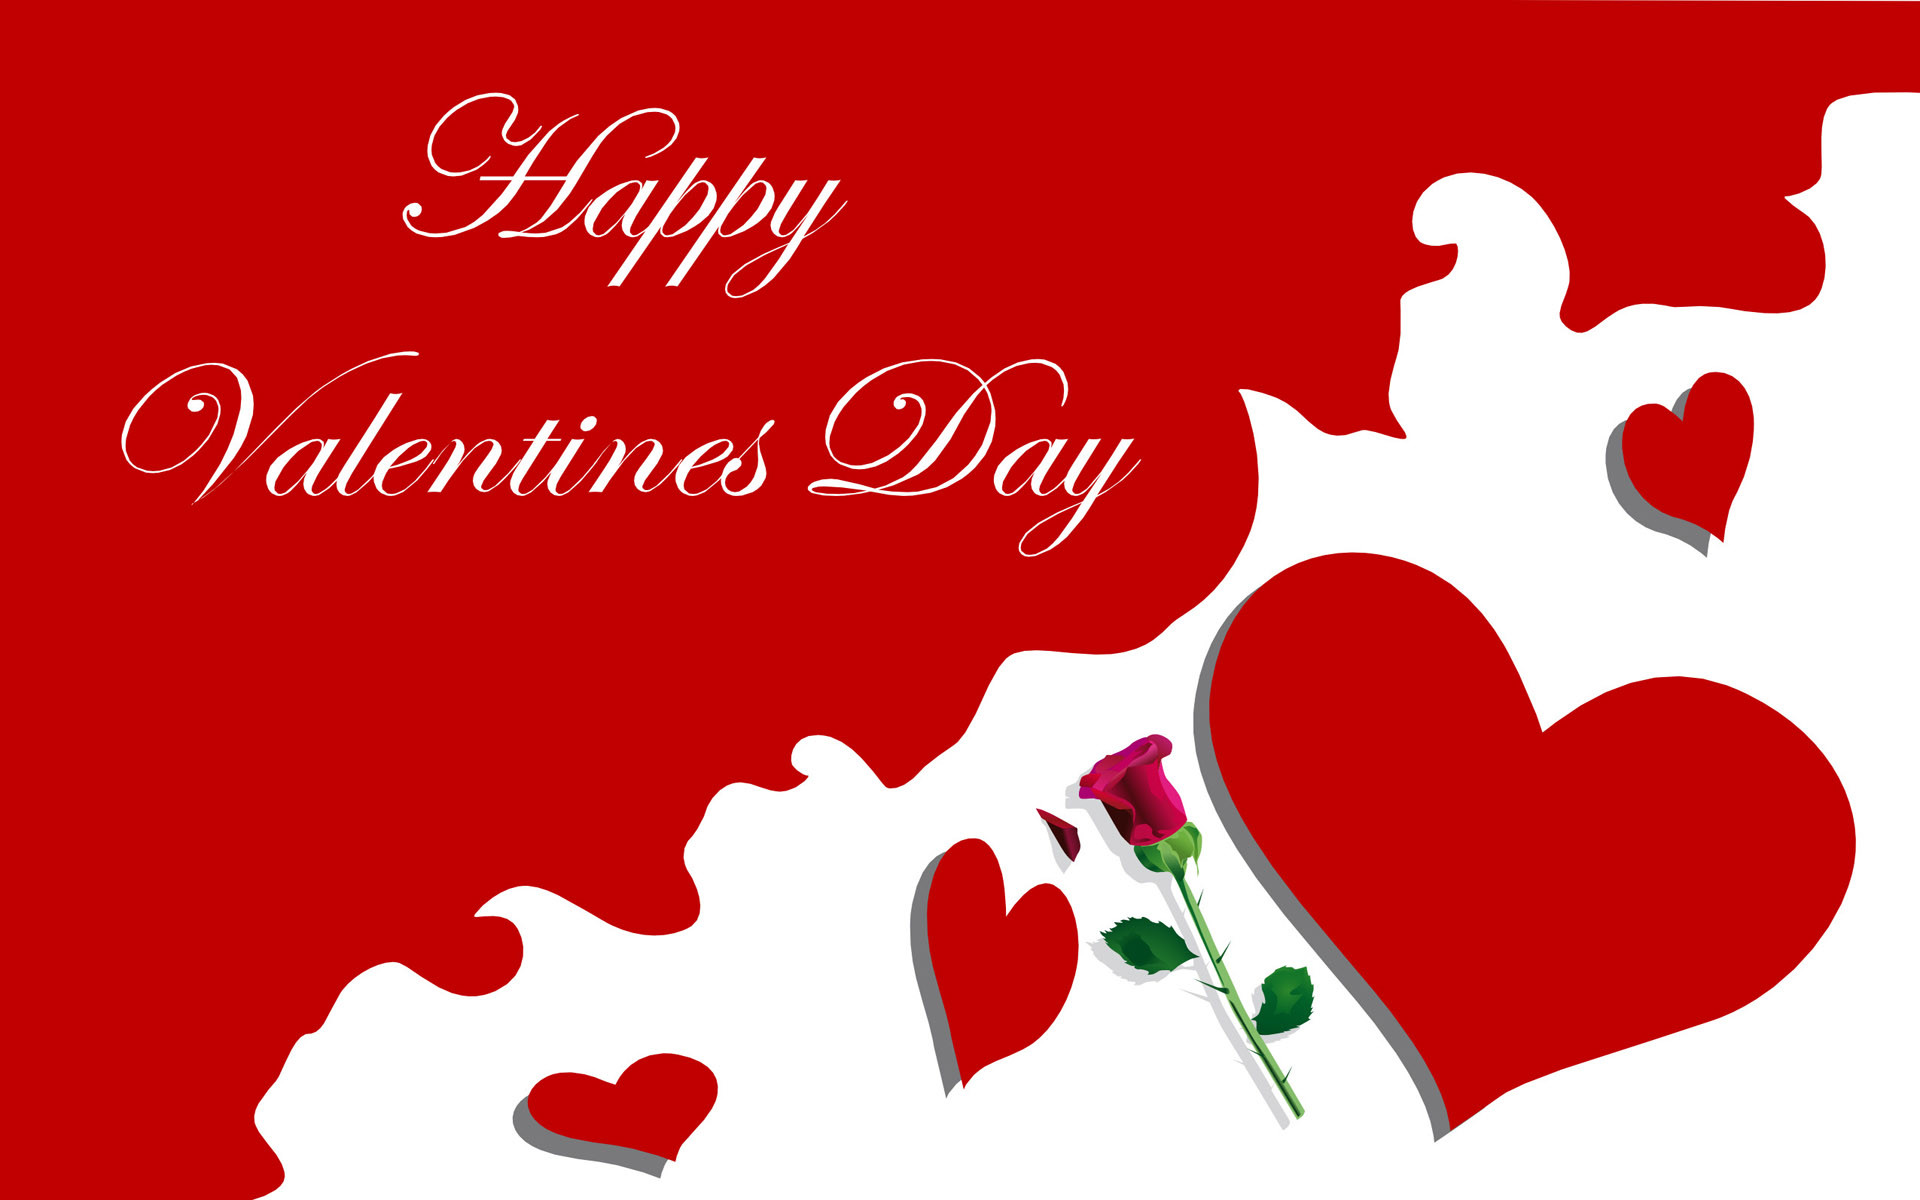 1920x1200 Explore 2015 Quotes, 2015 Wallpaper, and more! Happy Valentines Day Images  2015